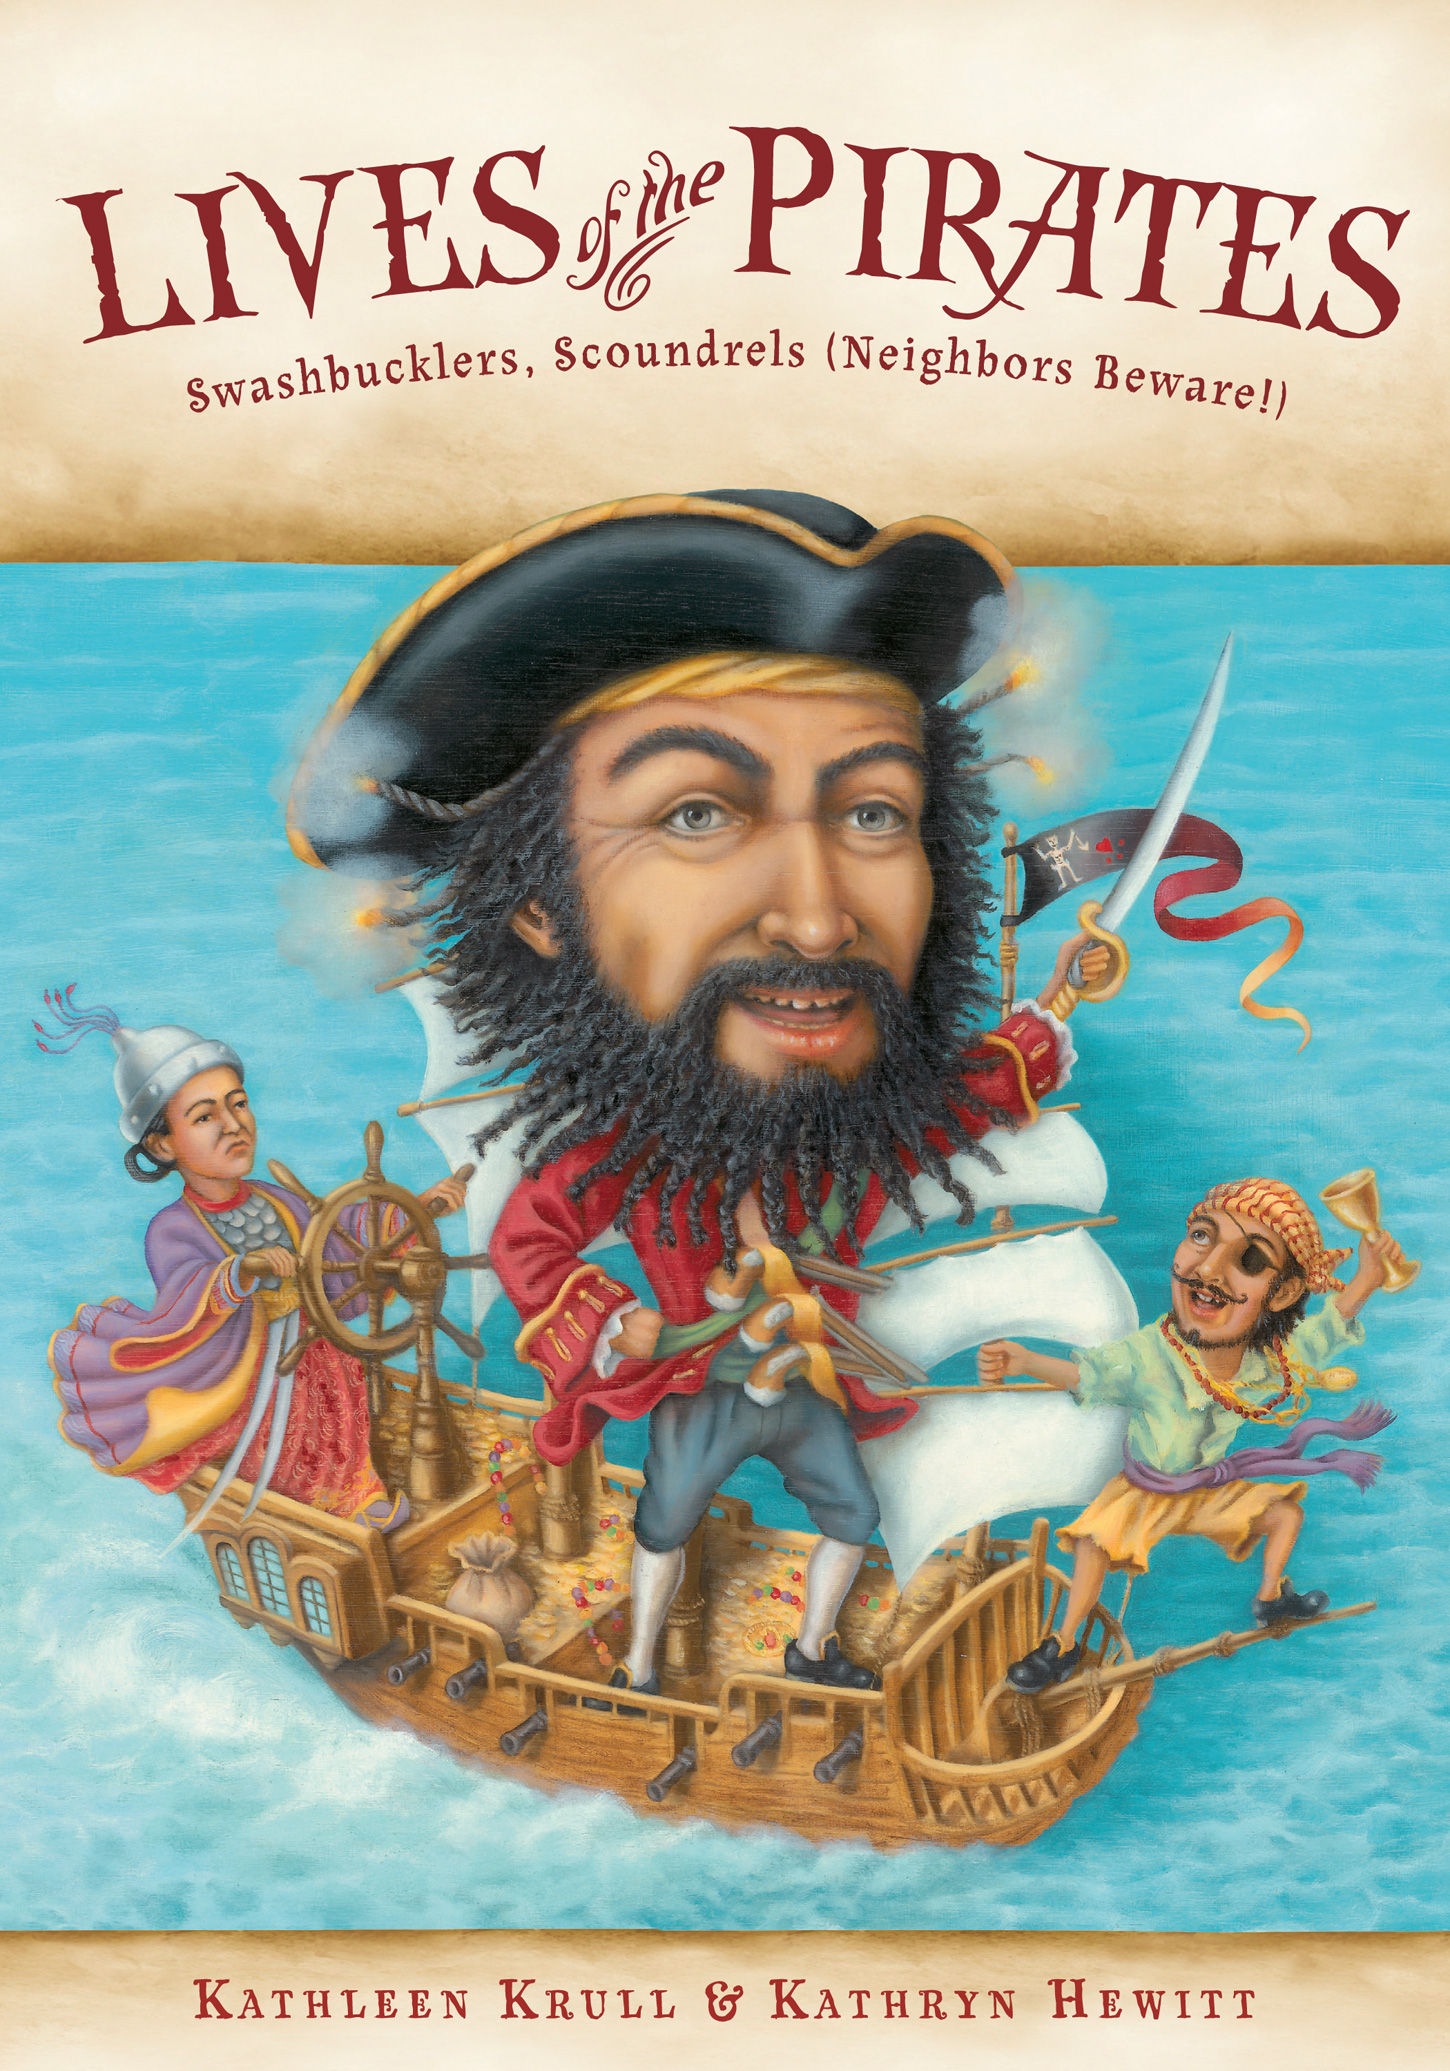 Lives of the Pirates: Swashbucklers, Scoundrels (Neighbors Beware!) - Kathleen Krull, illustrated by Kathryn Hewitt   Houghton Mifflin Harcourt 2013Every kid knows that pirates talk funny, swing a big sword, and seek buried treasure—don't they? What do we really know about Blackbeard, Madame Cheng, Sir Francis Drake, and other men and women of pirate history? What drove them to sail the high seas? What were their bad habits, favorite foods, and silly quirks? And did they actually talk like that? A lively style, lots of surprises, and solid research have made the Lives of . . . series of collective biographies popular with both kids and adults. Now the series returns, spanning the globe with profiles of the nineteen most notorious pirates in history.